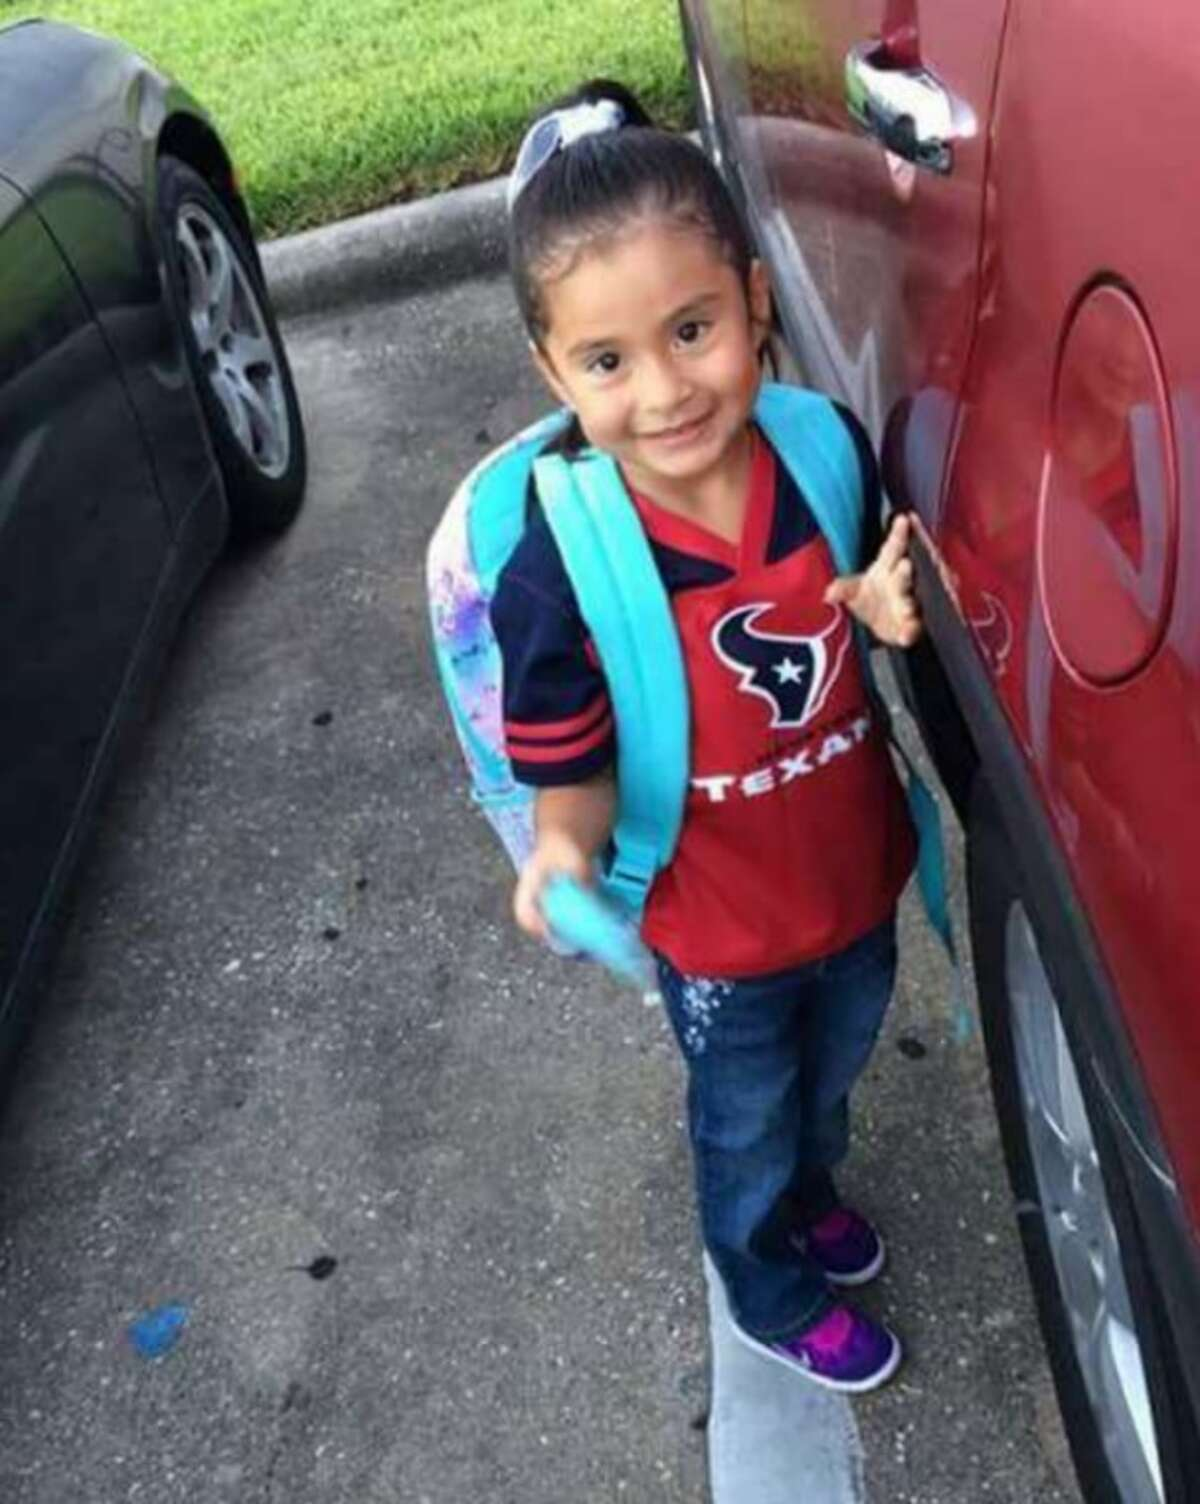 The Harris County Sheriff's Office is searching for a black Honda Accord with the license plate GBV0987.The sheriff's Office believes the suspect or suspects responsible for the murder of 4-year-old Ava Castillo. Anyone with information is urged to call the Harris County Sheriff's Office Homicide Division at 713-274-9100 or Crime Stoppers at 713-222-TIPS.